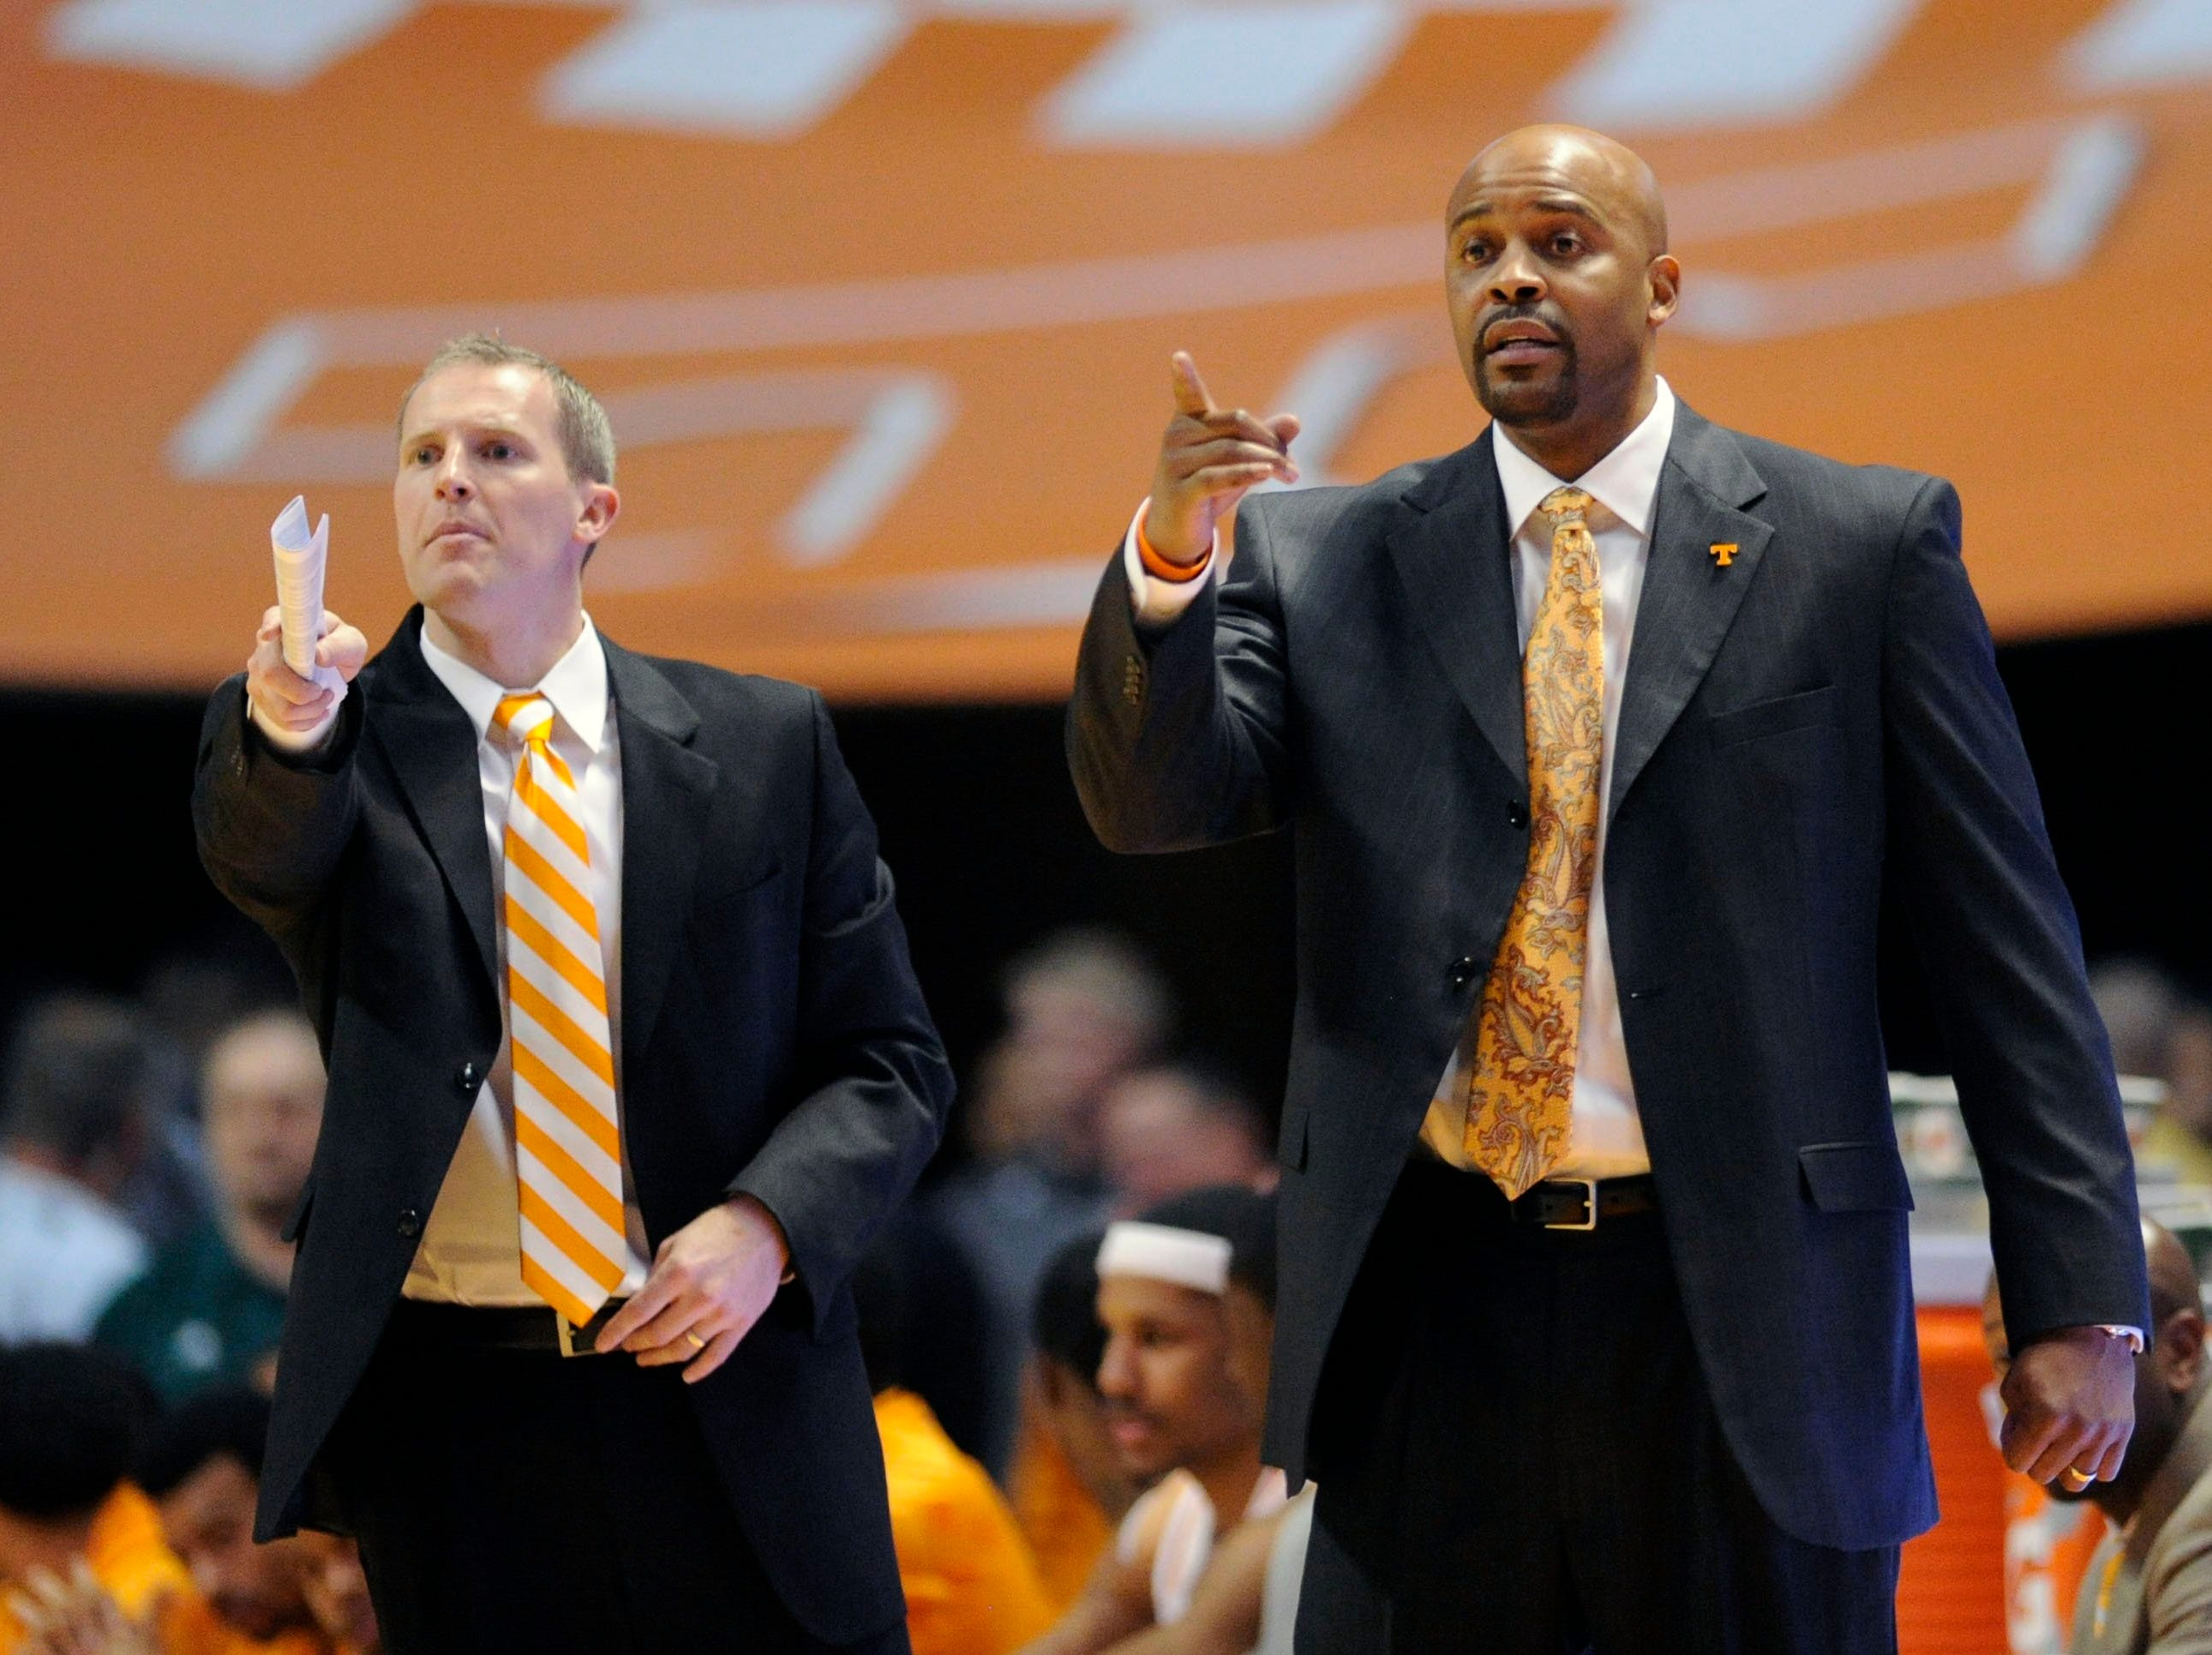 Tennessee assistant coach Kent Williams and Tennessee head coach Cuonzo Martin signal to players from the sideline during the first half against Texas A&M at the Thompson-Boling Arena in Knoxville on Saturday, Jan. 11, 2014.